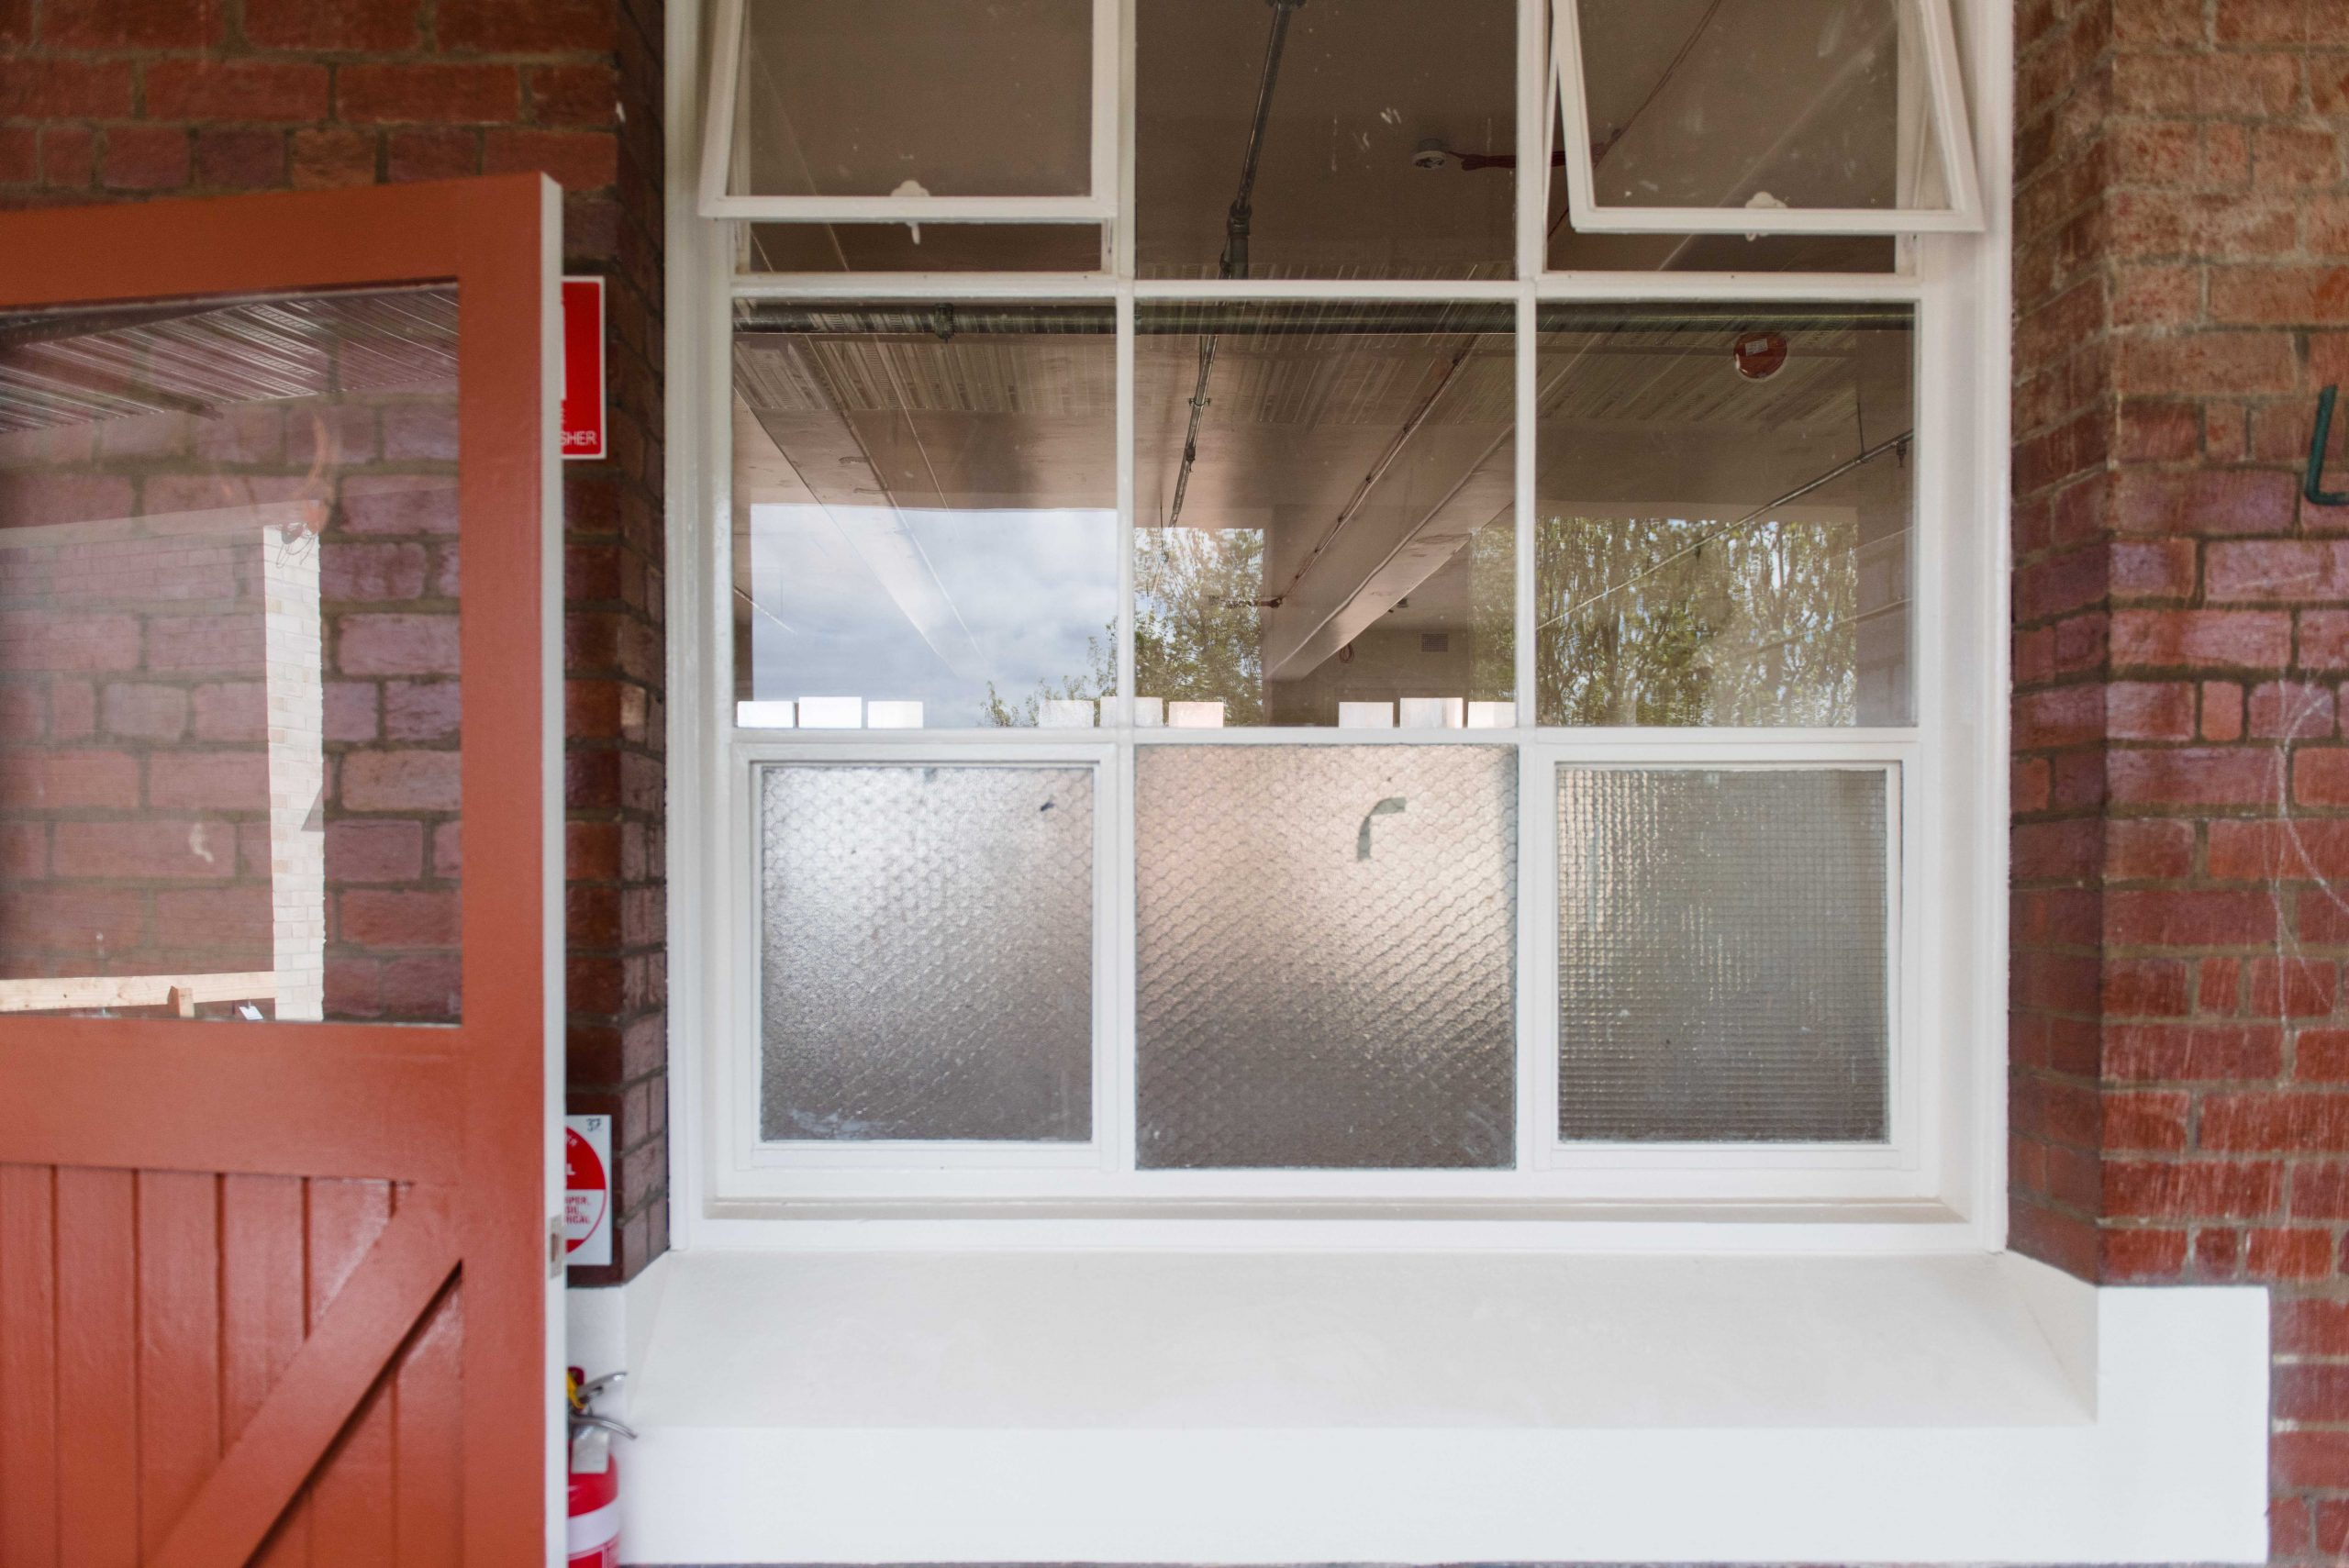 White framed windows with an opened maroon-coloured door